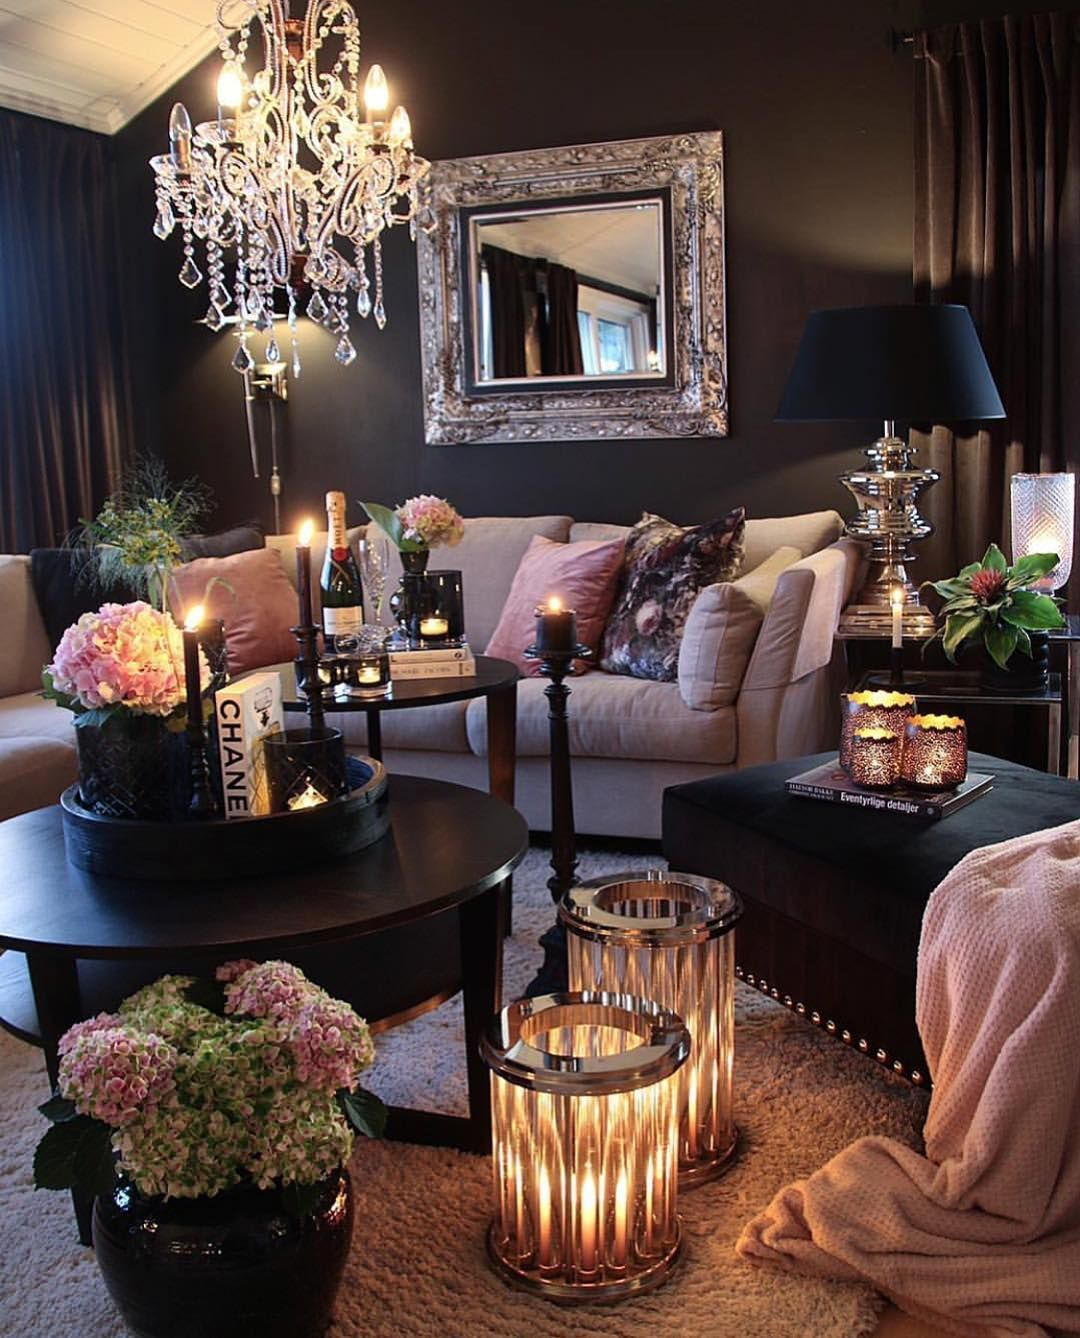 Interior Decor Inspiration On Instagram Living Room Goals Double Tap If You It Too Credit Sivbu Glam Living Room House Interior Black Living Room